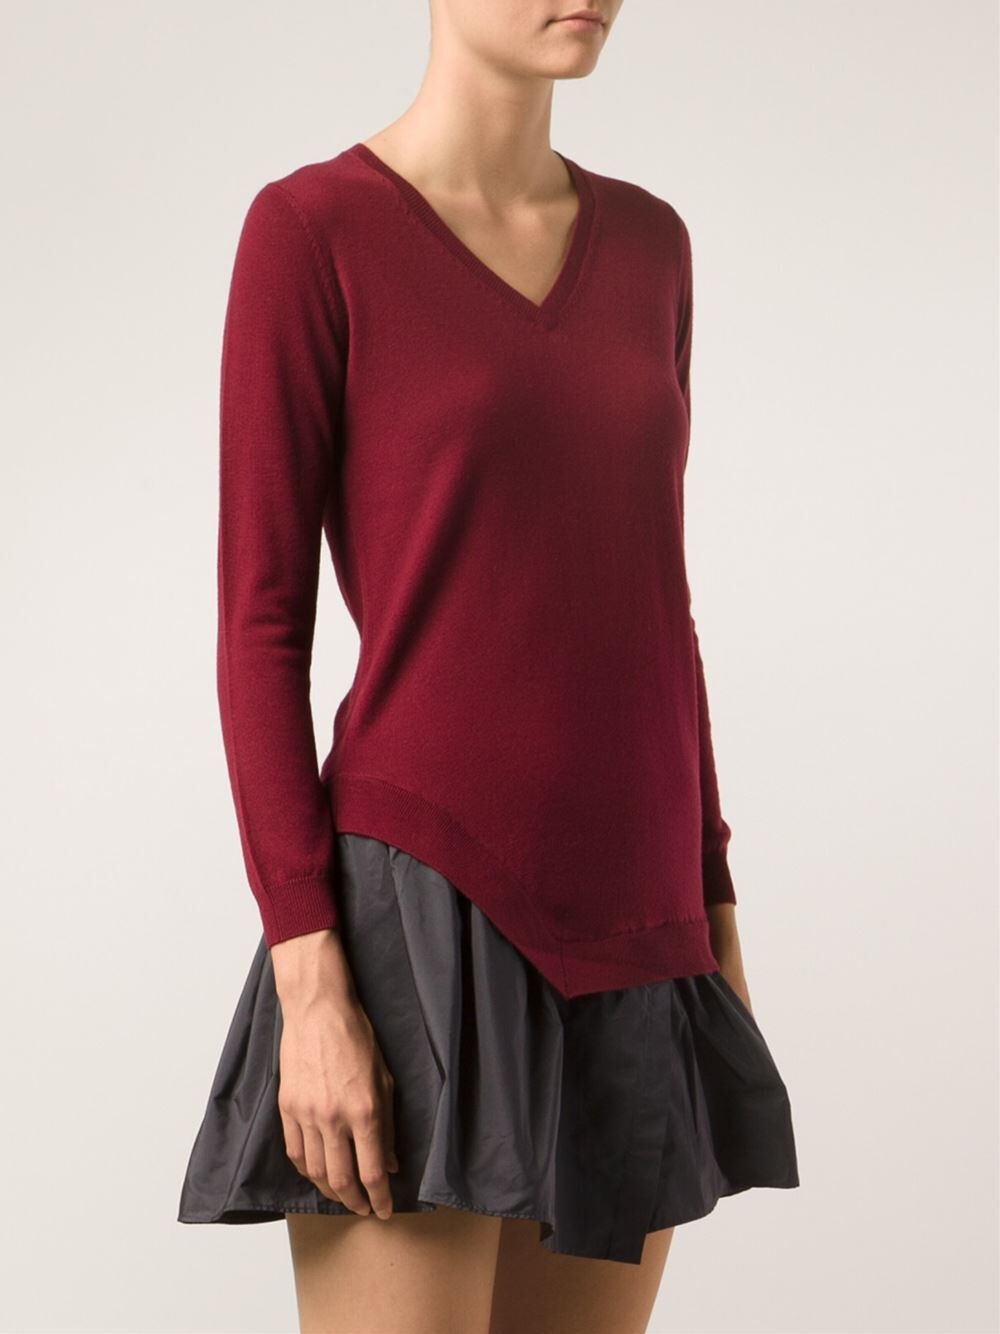 CARVEN burgundy red fine knit contrast flared dress M